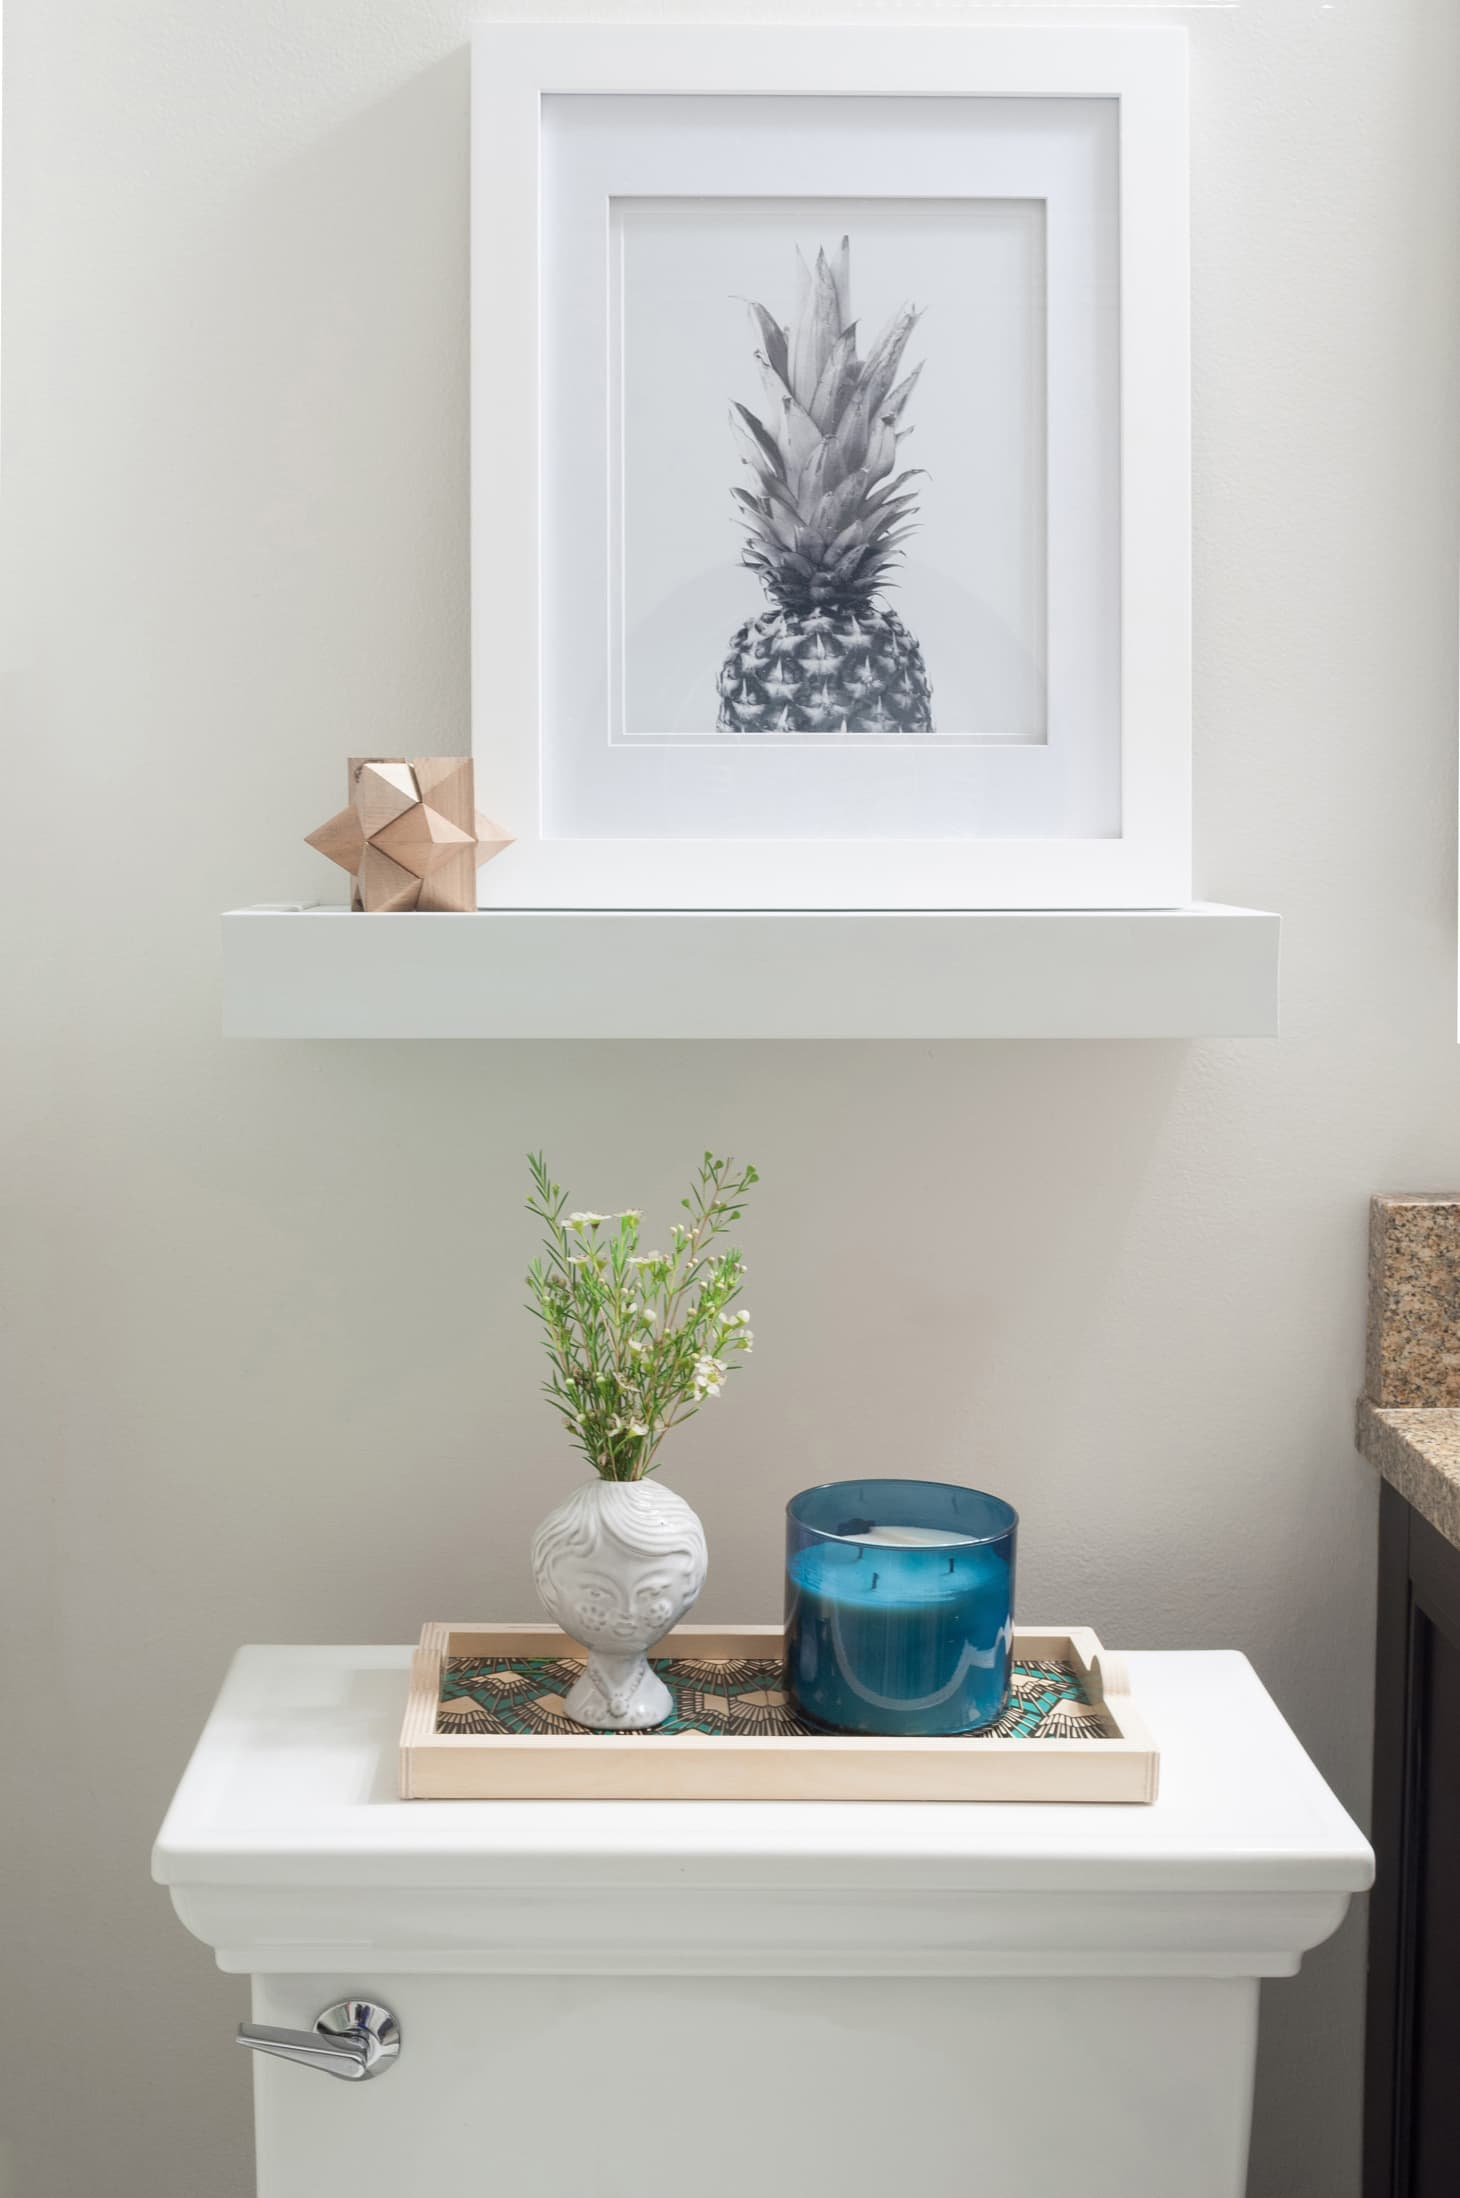 Amazing Floating Shelf For Renters Takes 5 Minutes And No Tools Home Interior And Landscaping Spoatsignezvosmurscom